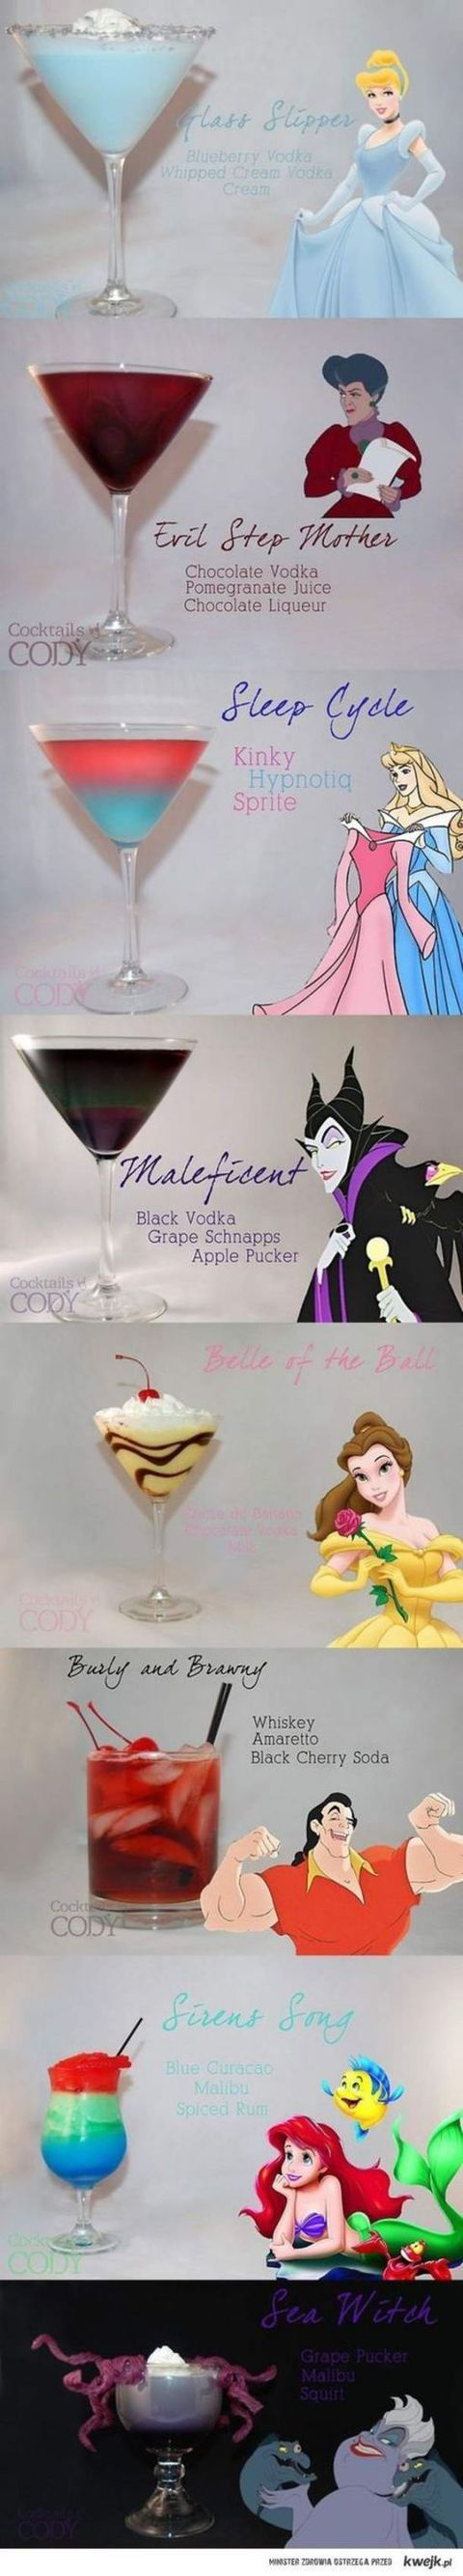 Disney Drinks! @Susie Sun Sun Walsh @Jennifer Milsaps L Verissimo Triplett can we PLEASE make these at our next dinner!